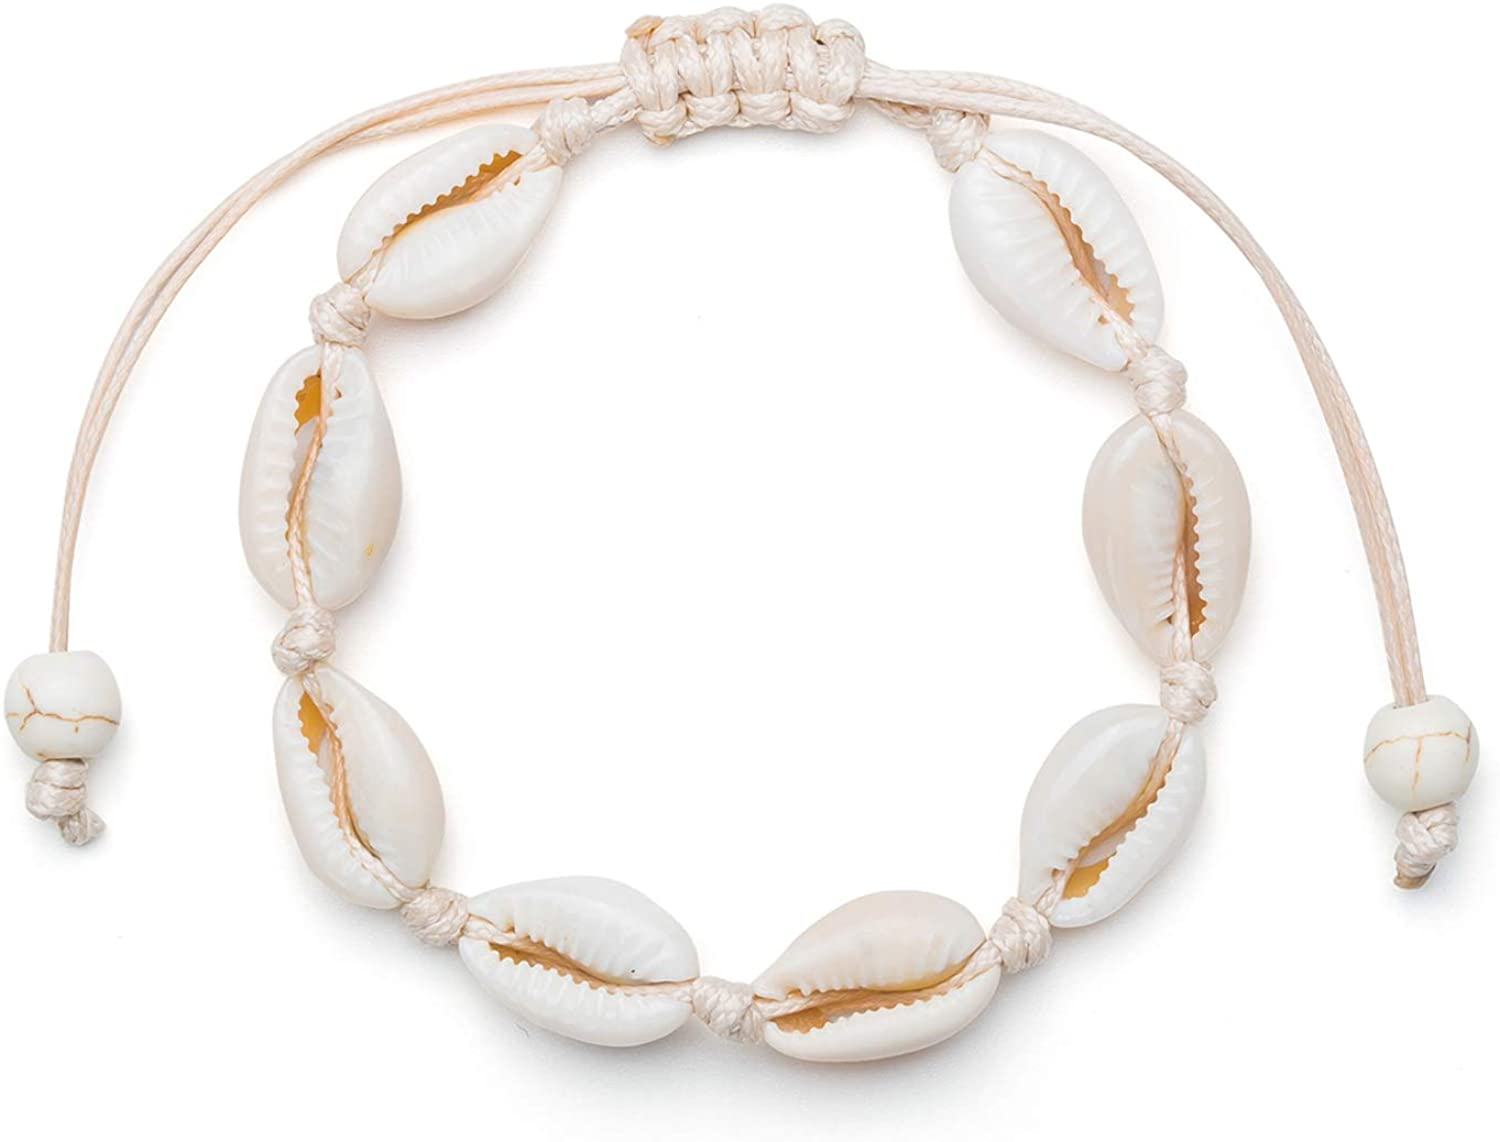 Fesciory Fashion Puka Shell Anklet for Women Cowrie Max 90% OFF Natural Adjus Summer